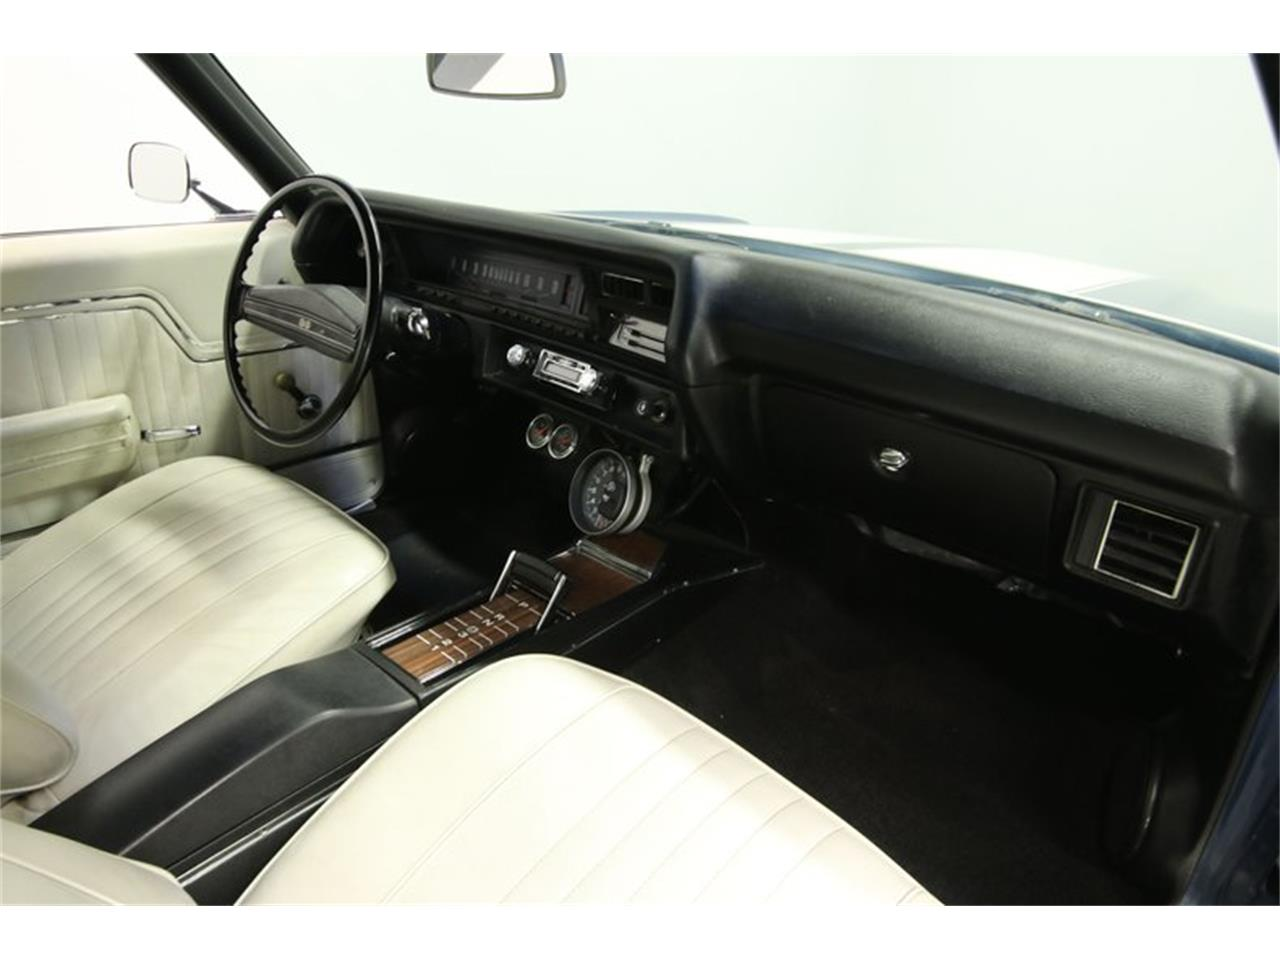 1972 Chevrolet Chevelle (CC-1415709) for sale in Lutz, Florida